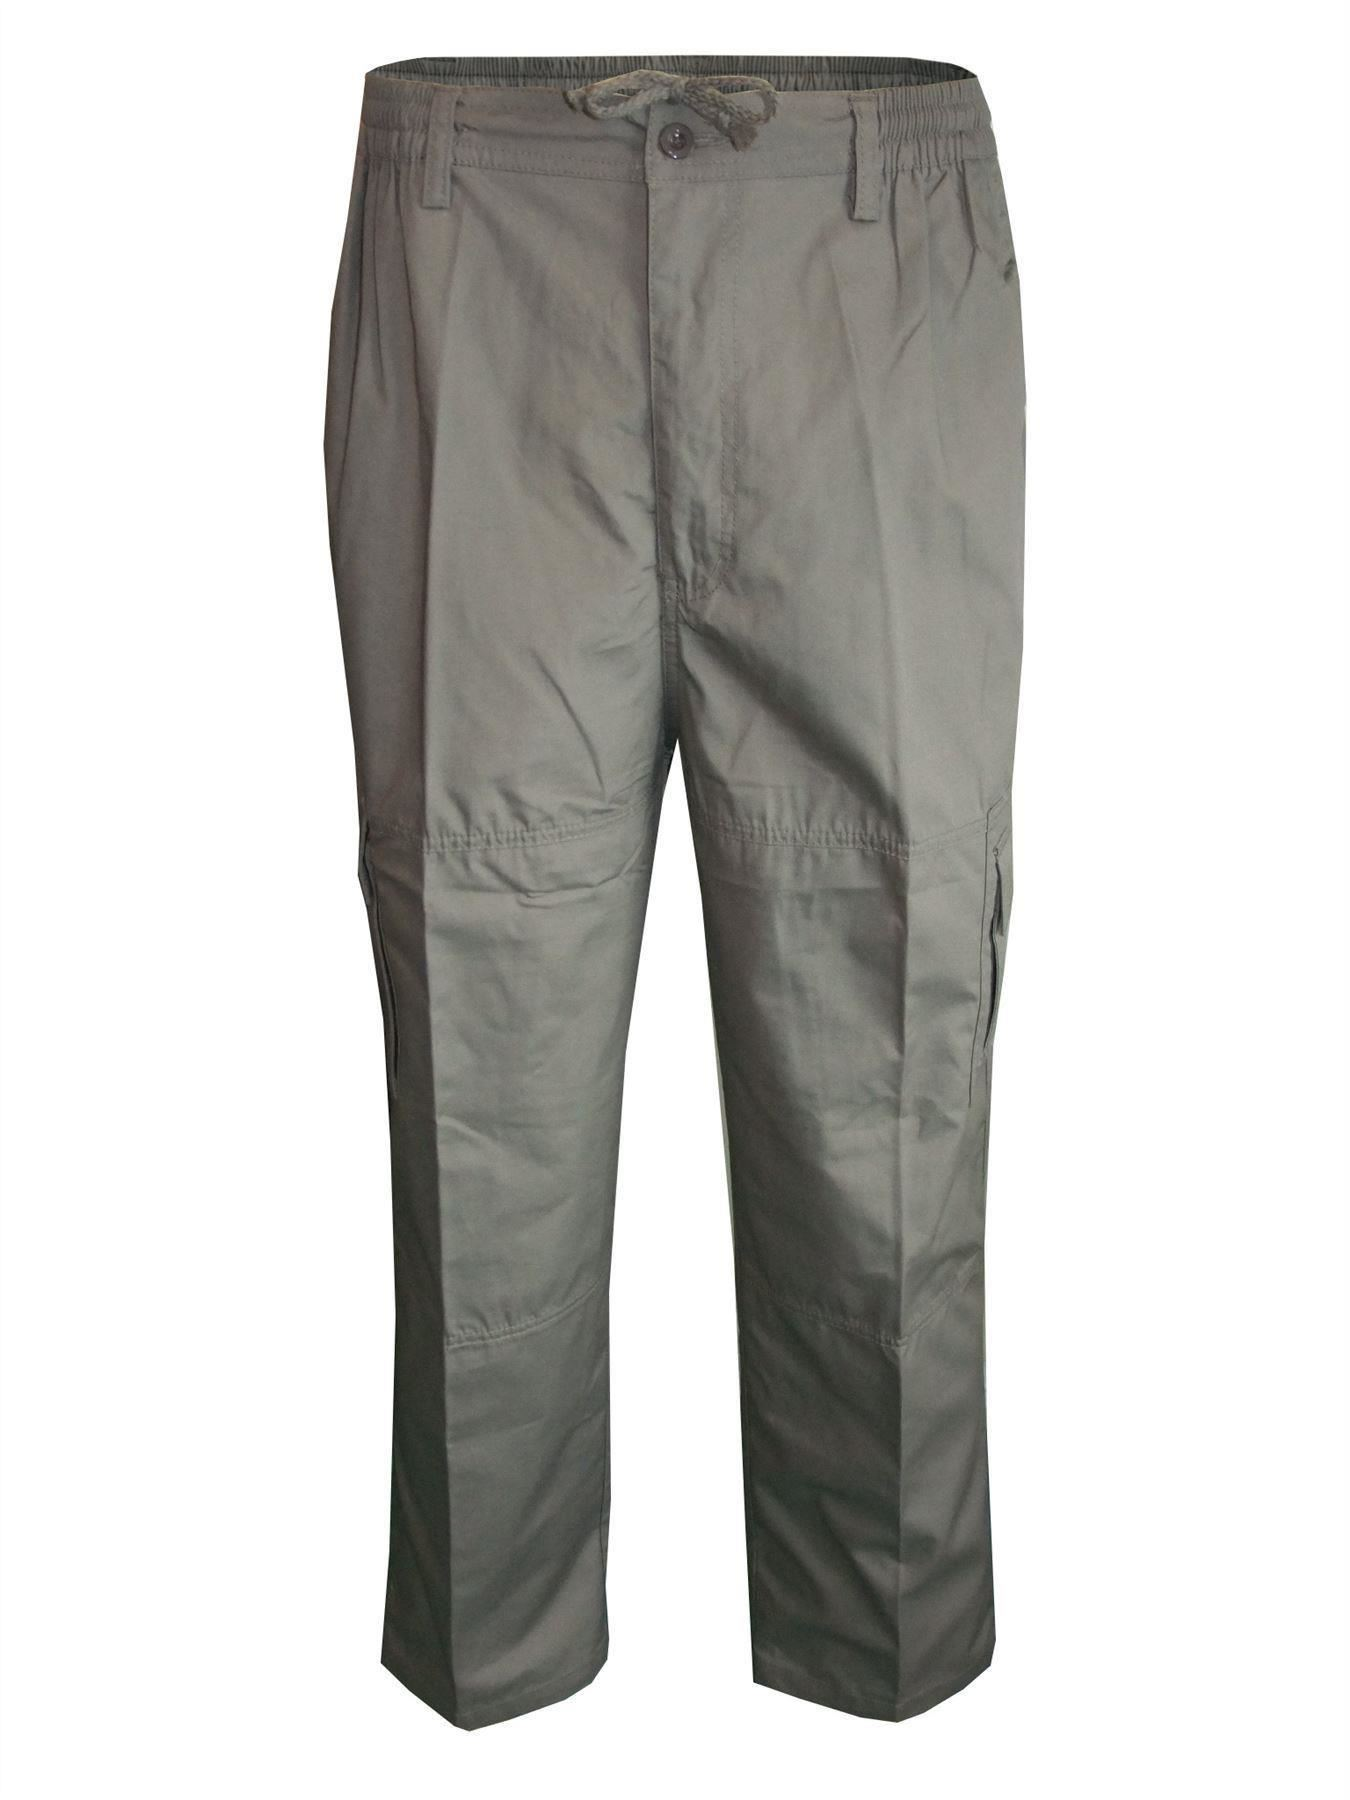 Men-Straight-Trousers-Cargo-Combat-Cotton-Elasticated-Zip-Fly-Casual-Pants-M-3XL thumbnail 19